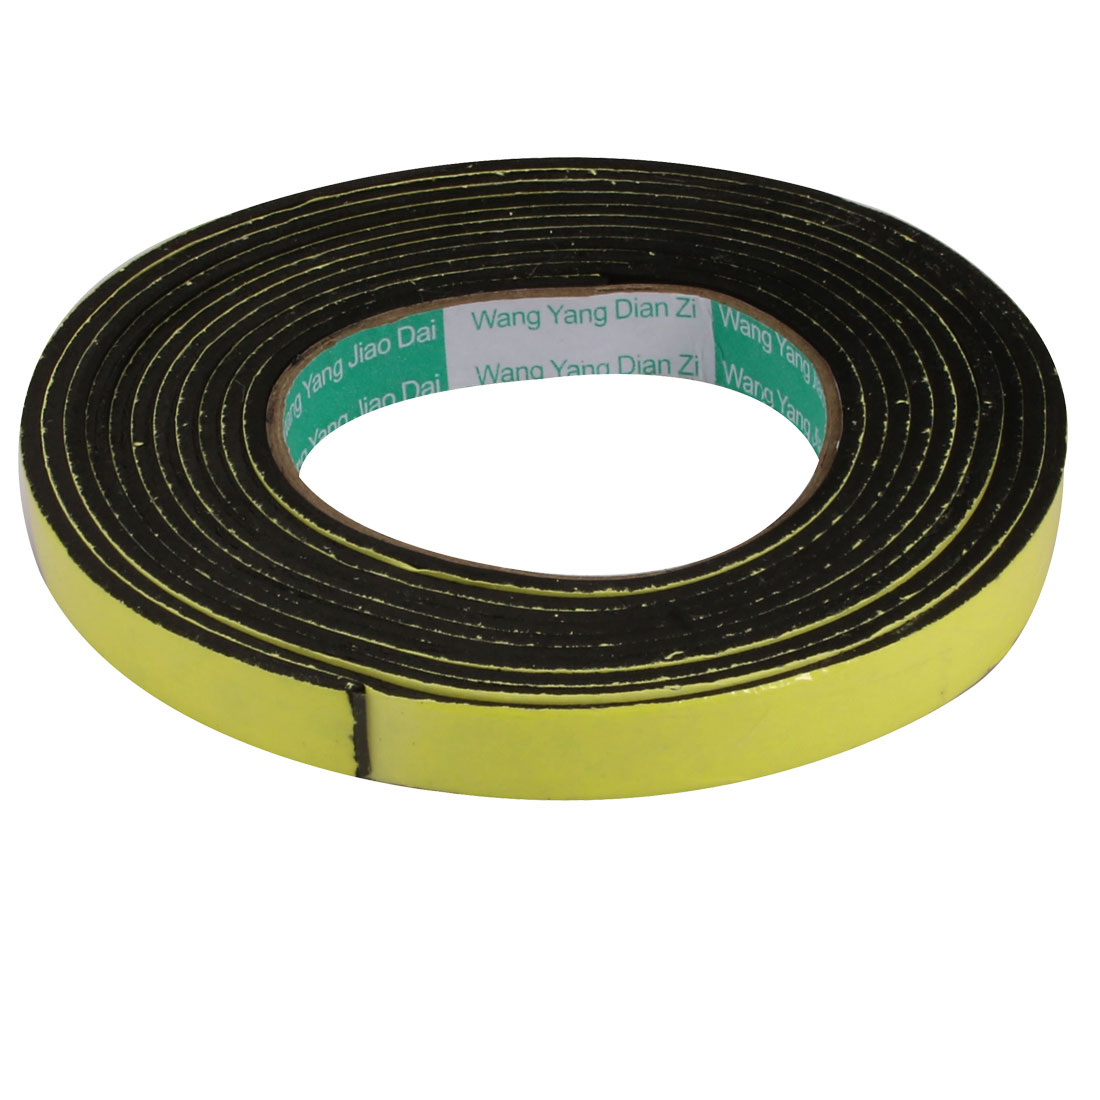 15mm Wide 4mm Thick Single Sided Shockproof EVA Sponge Tape Black 3 Meters Long